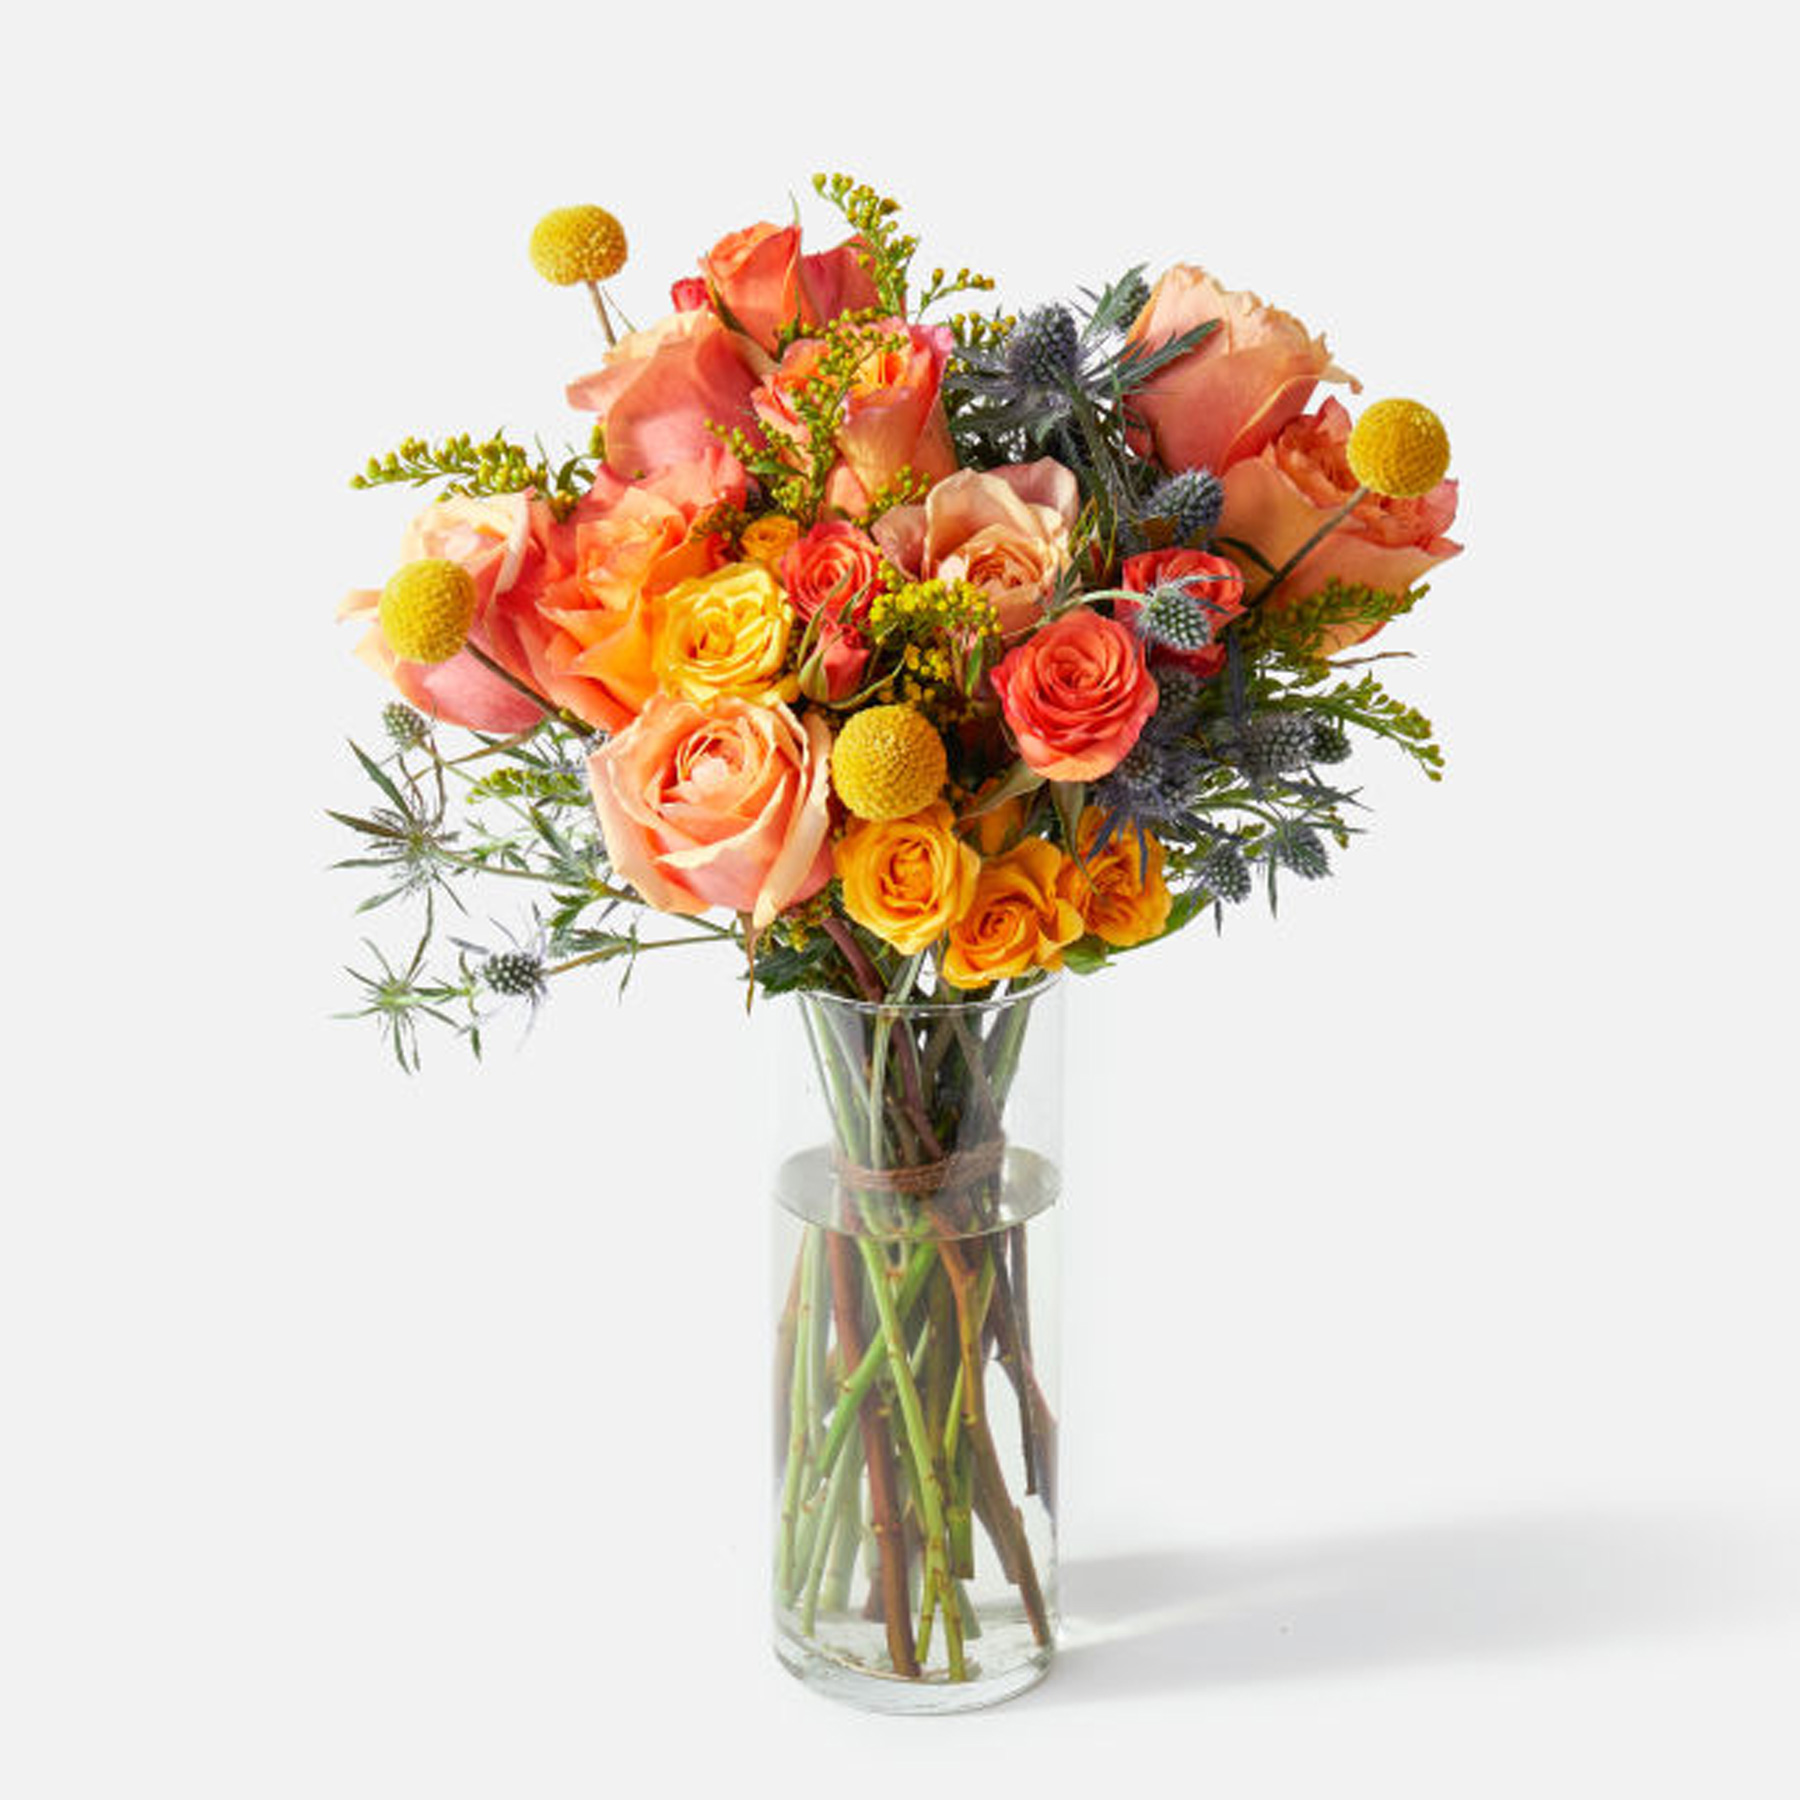 Gifts for someone going through a hard time: UrbanStems The Firecracker Bouquet